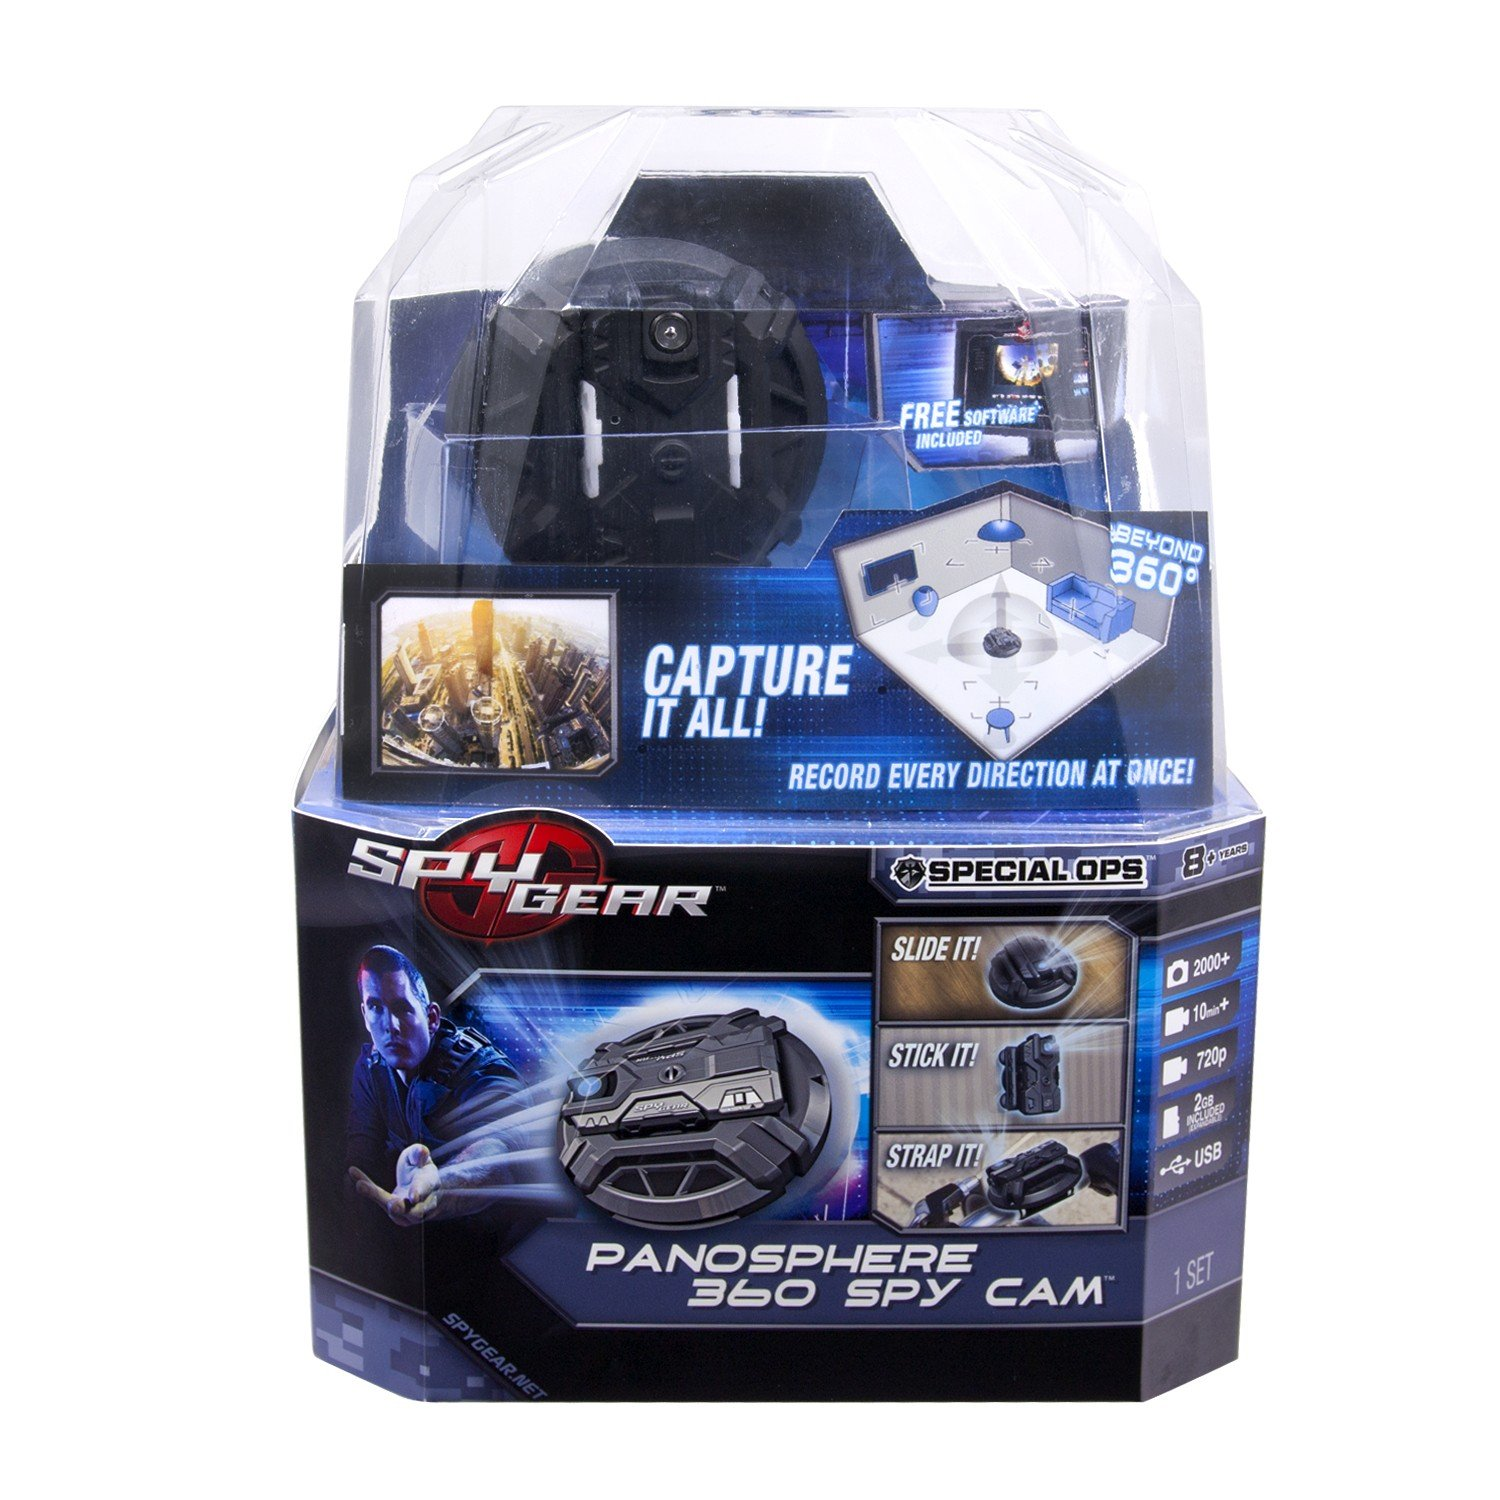 Spy Gear Panosphere 360 Spy Cam